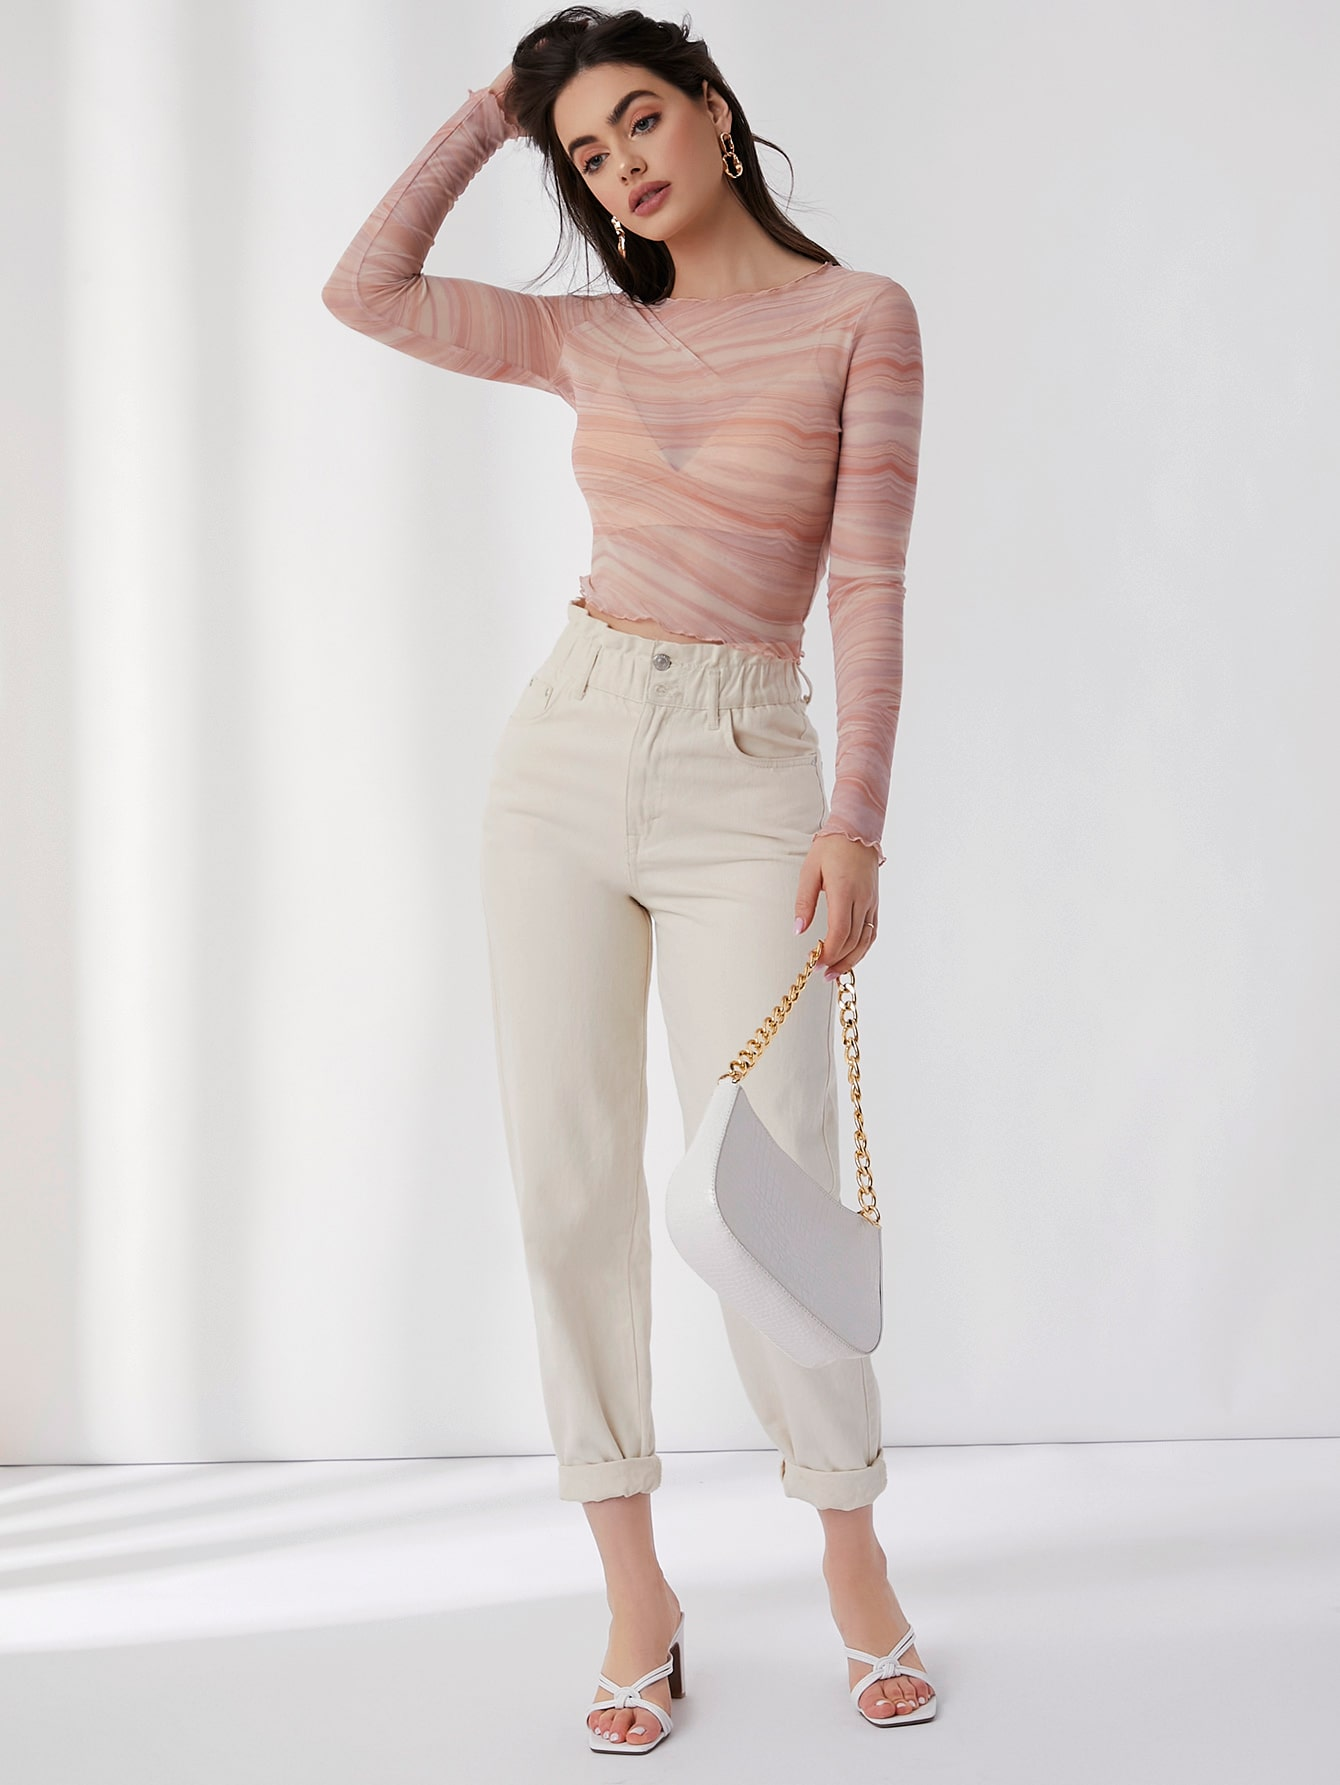 Lettuce Edge Marble Mesh Top Without Bra